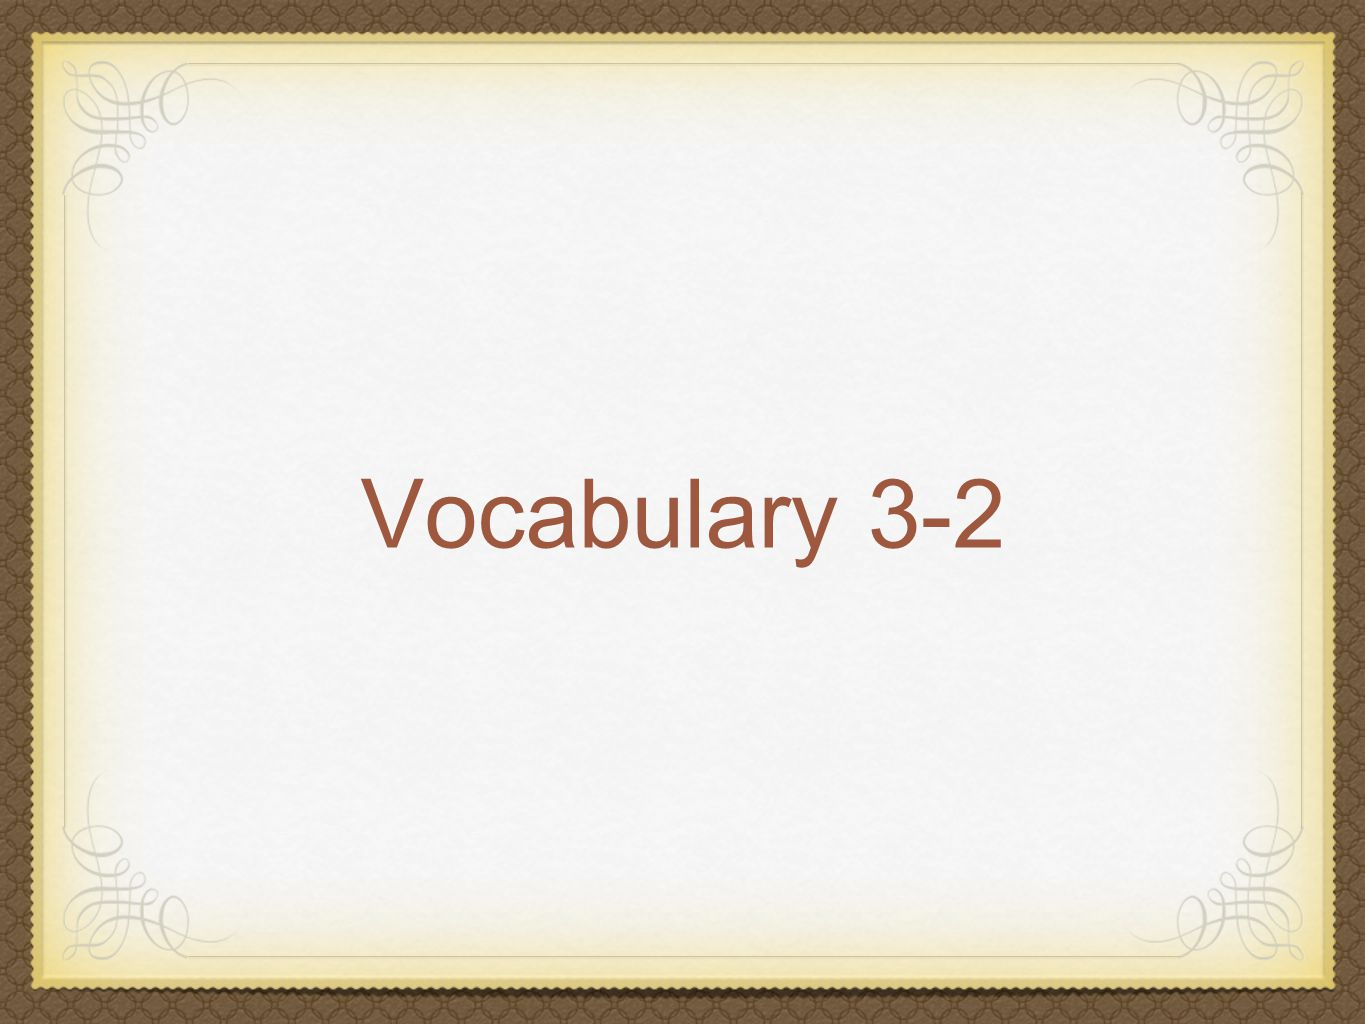 Vocabulary 3-2